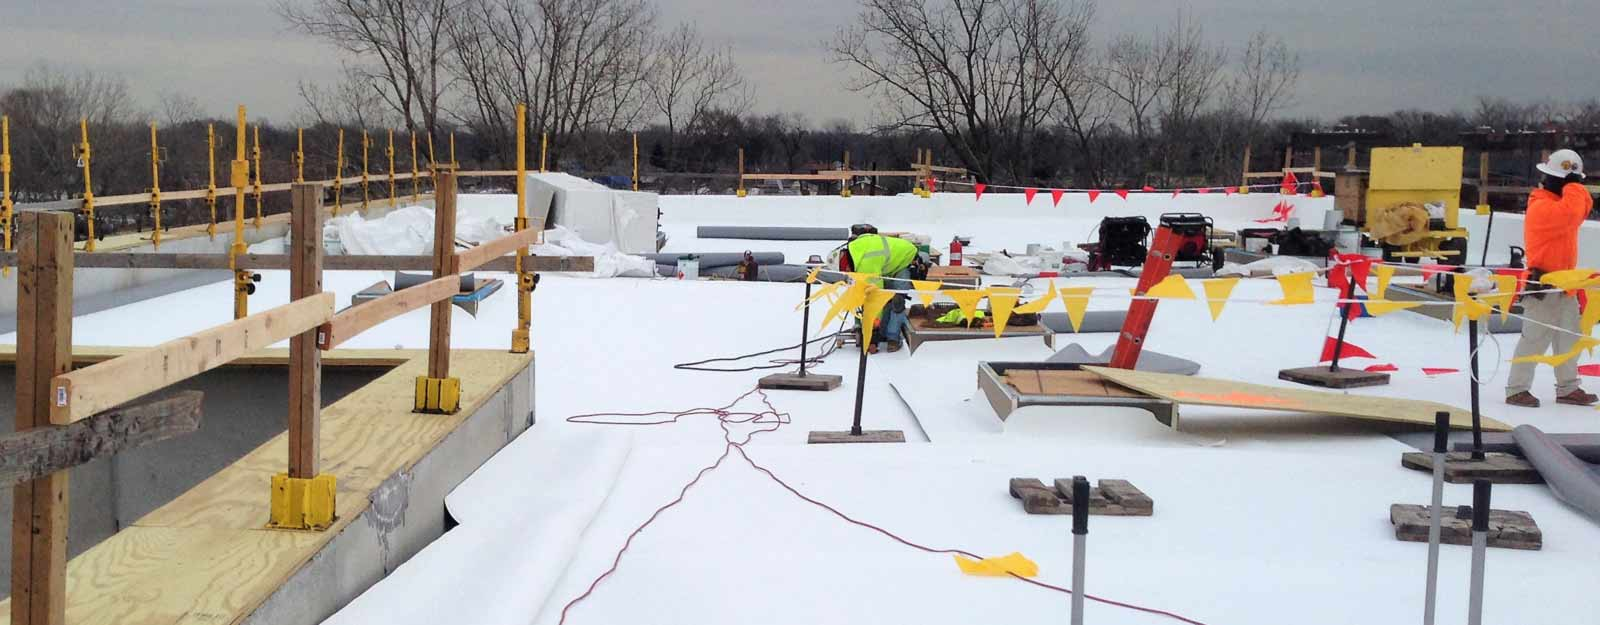 A 1 Roofing Commercial Roofing Contractor In Chicago